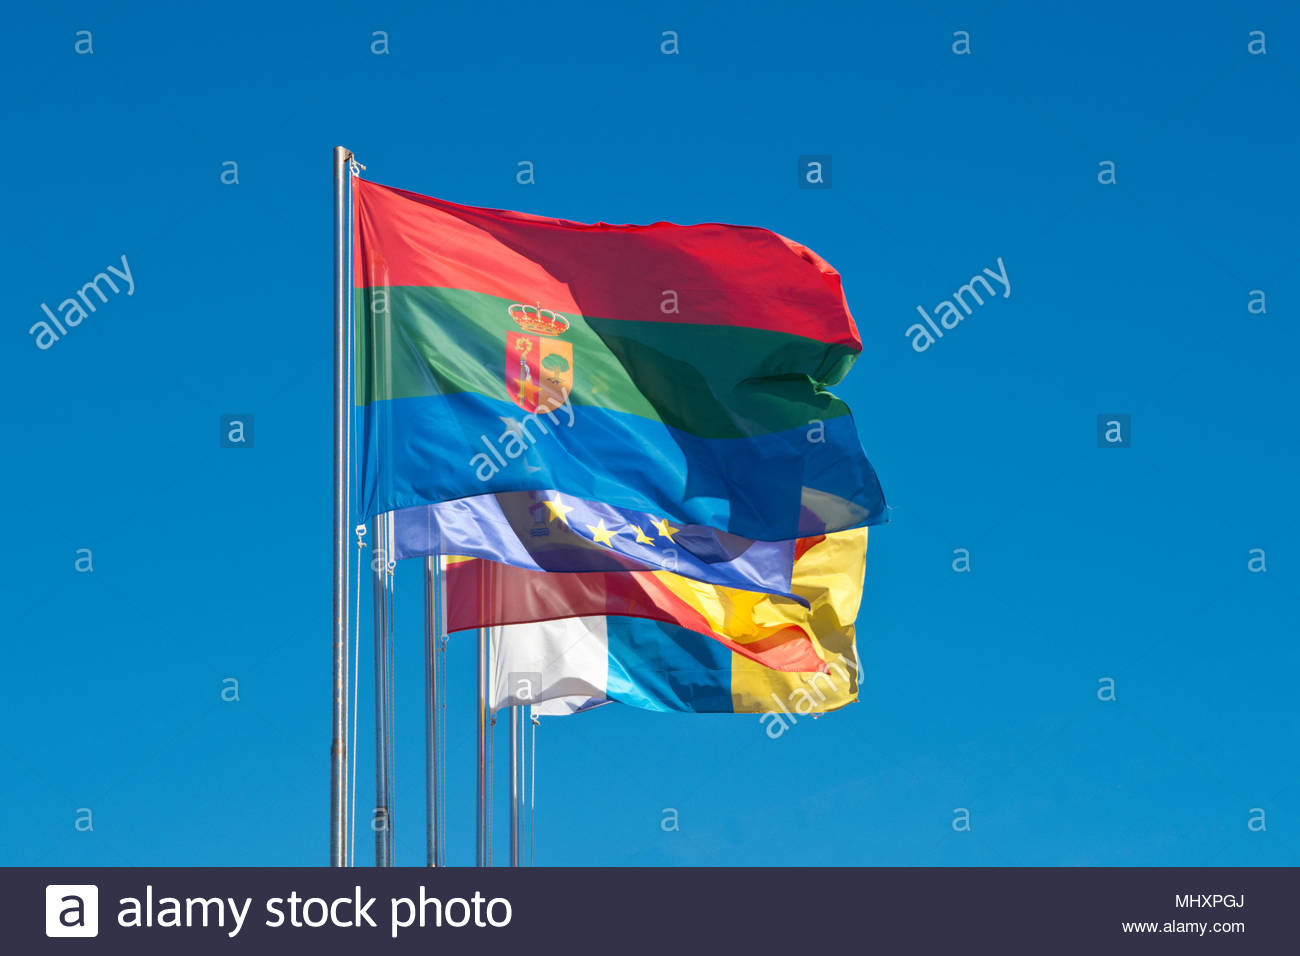 The Municipal Flag of Arona in the Canary Islands (Tenerife) with other flags - Stock Image